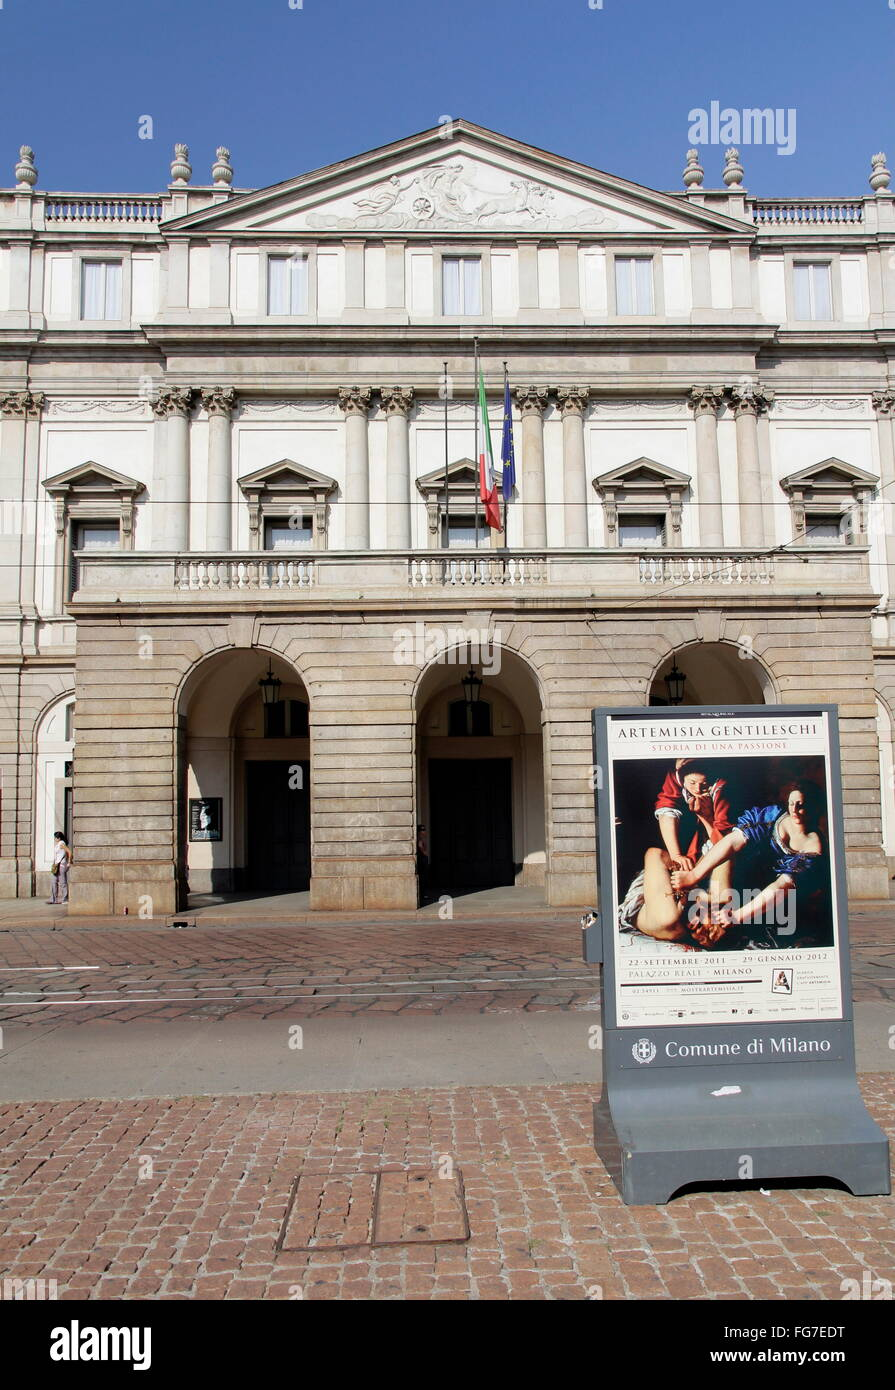 geography / travel, Italy, Lombardy, Milan, Piazza del Scala, La Scala, Additional-Rights-Clearance-Info-Not-Available - Stock Image